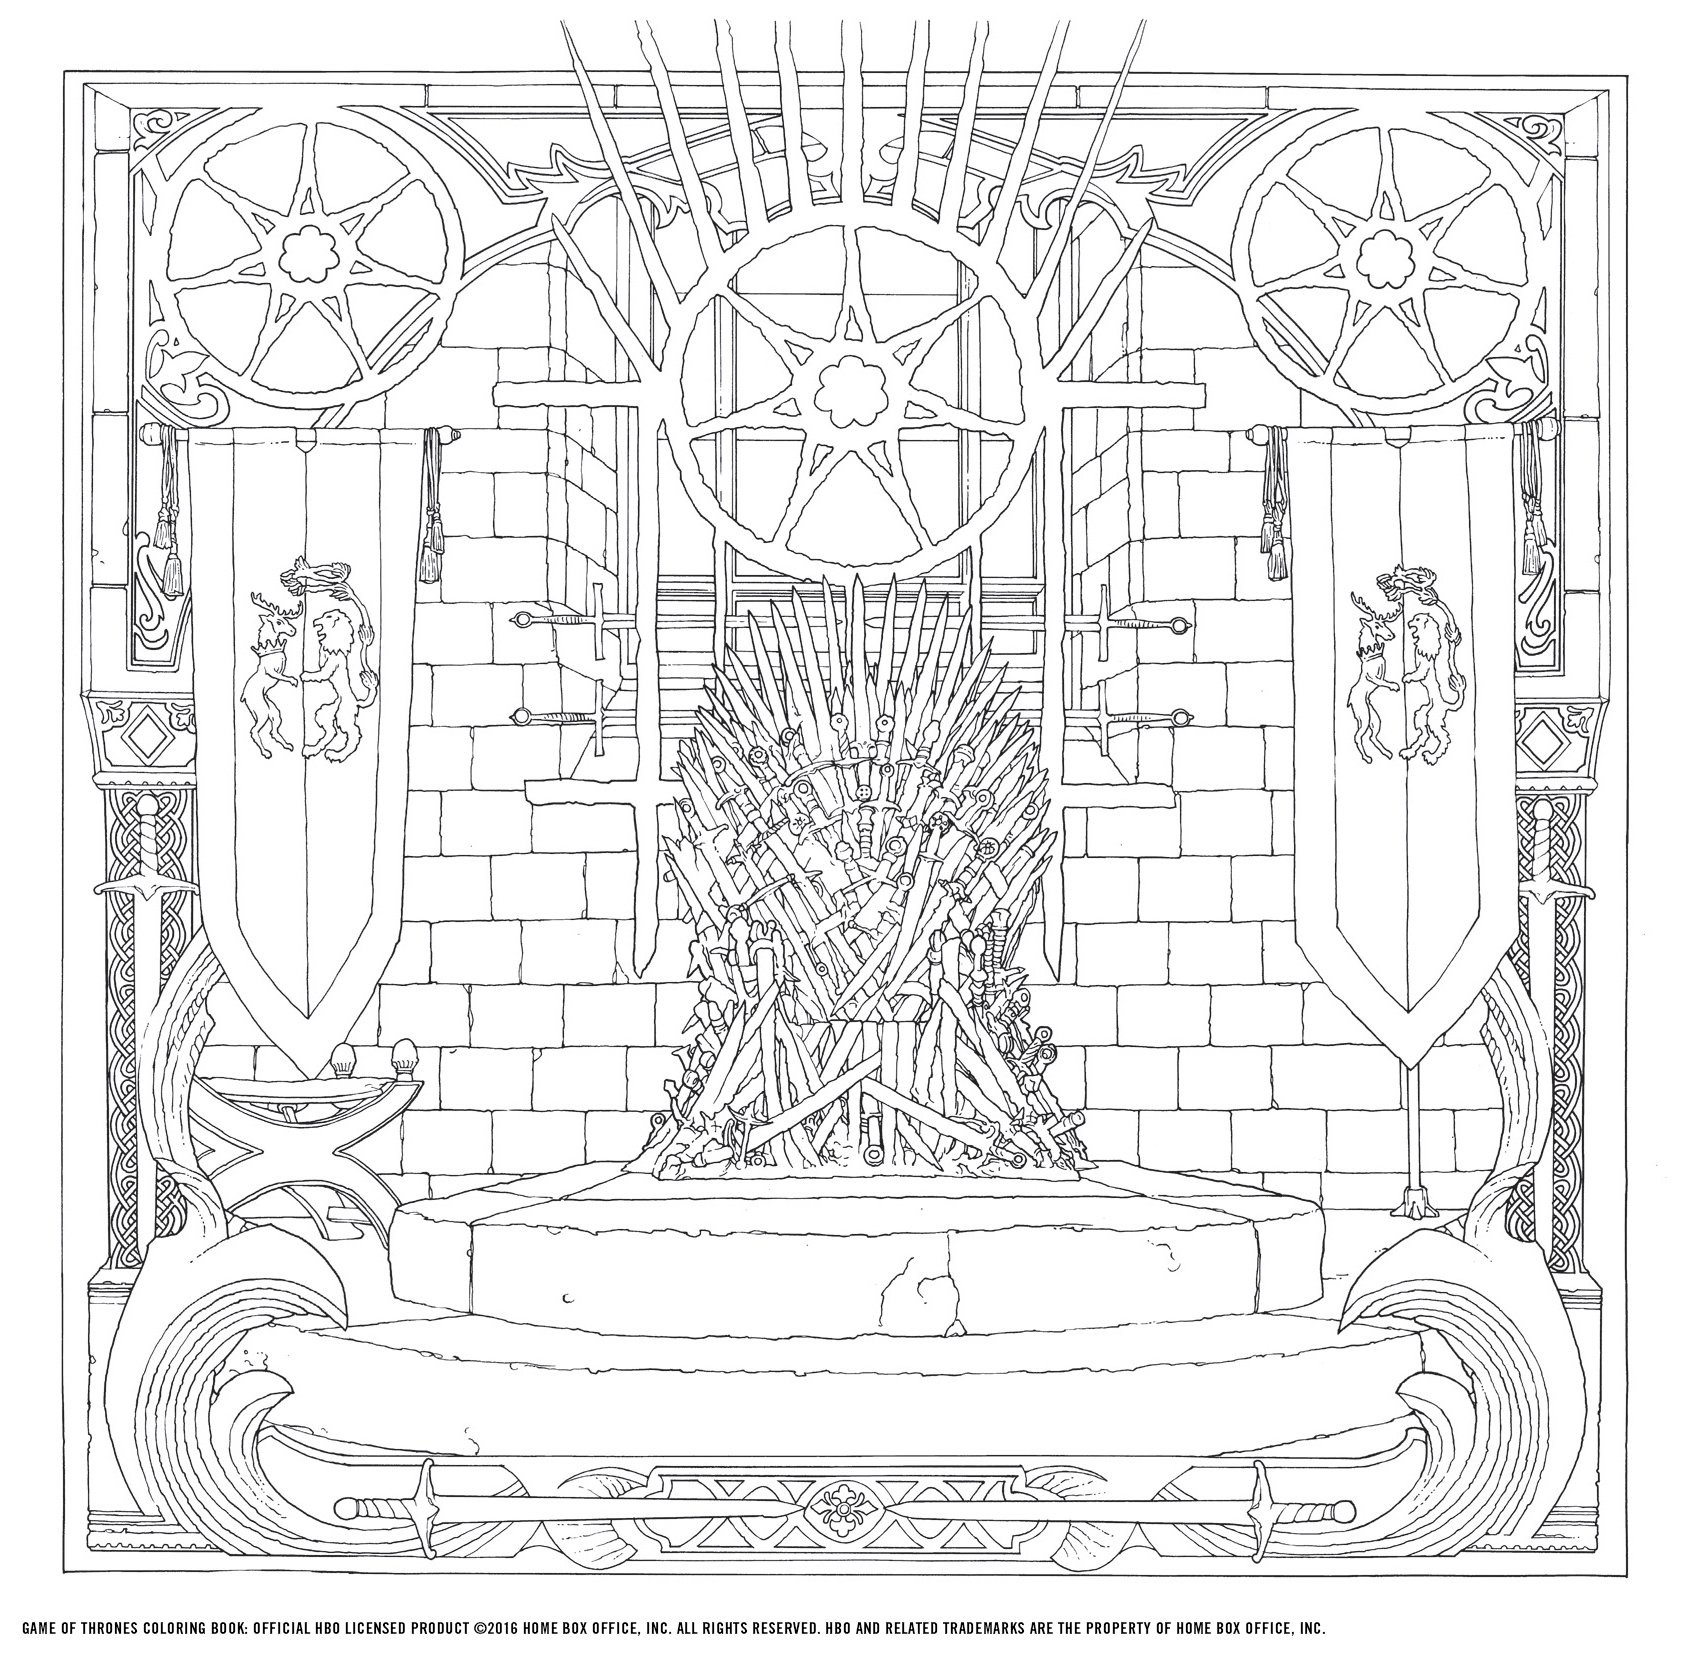 hbos game of thrones coloring book hbo 9781452154305 amazoncom books - Game Of Thrones Coloring Book